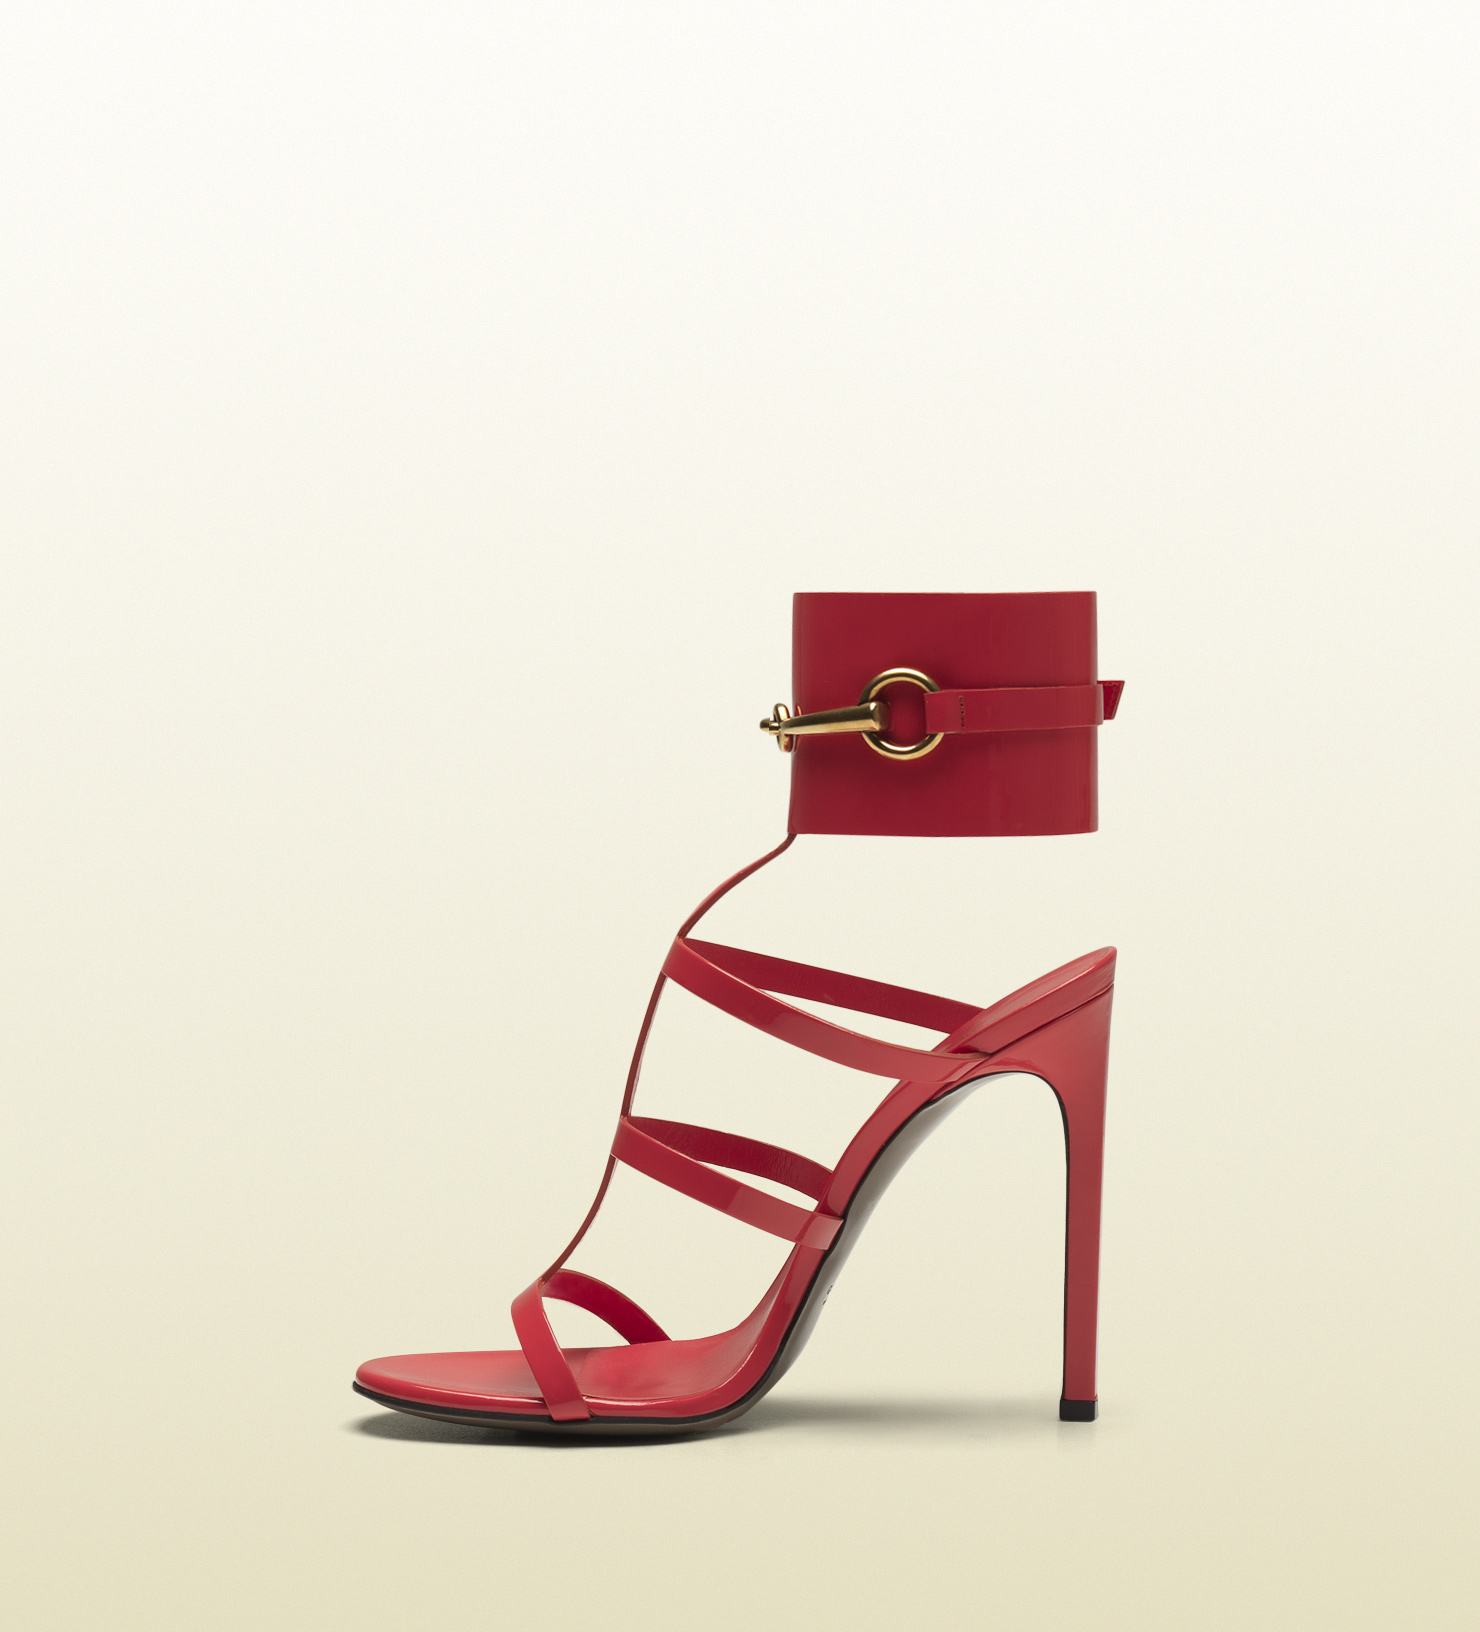 46b31fa9ea76 Lyst - Gucci Ursula Anklestrap High Heel Sandal in Red